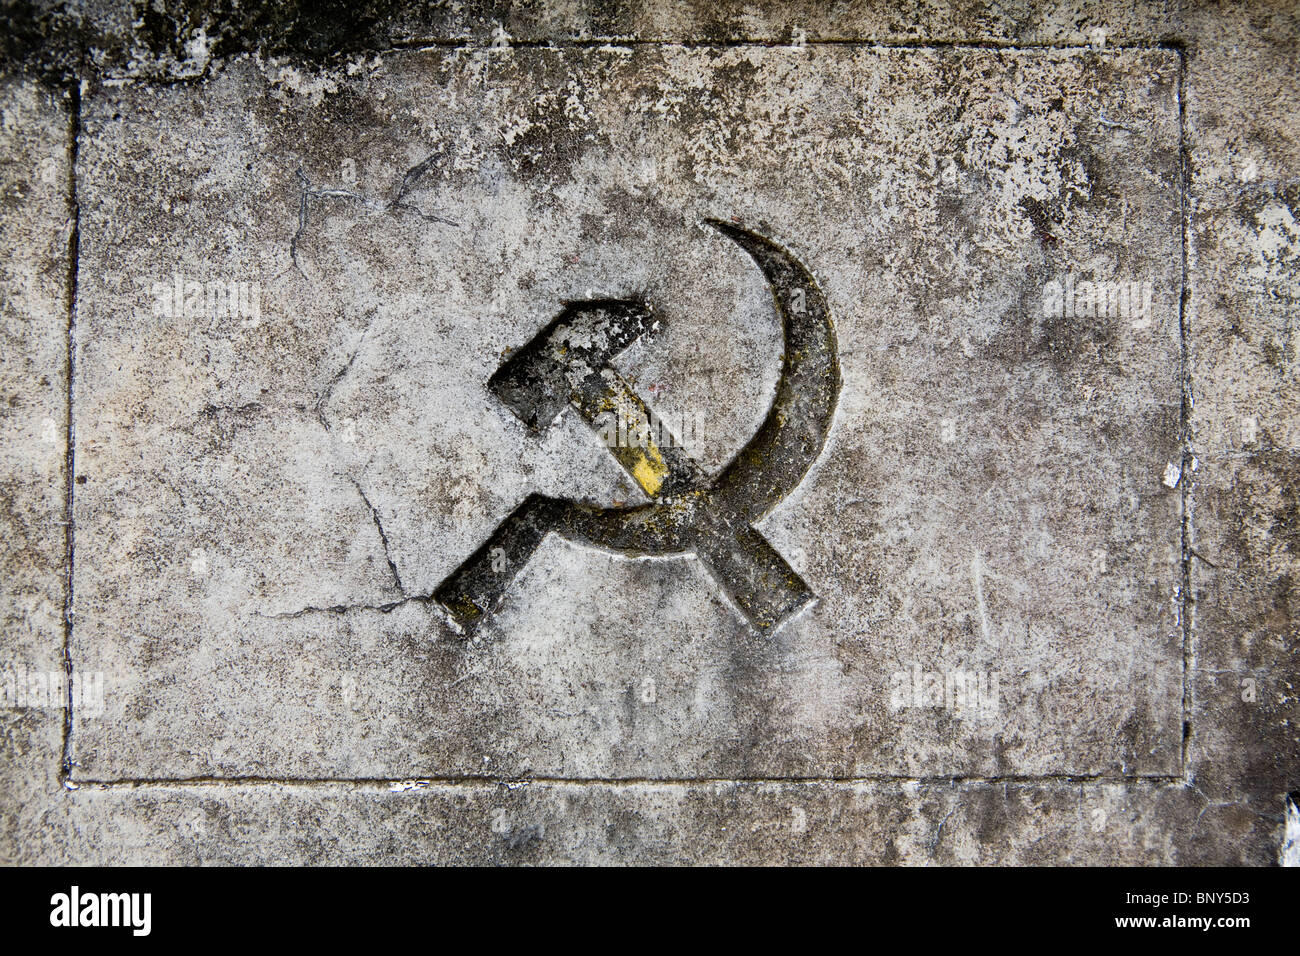 Hammer and sickle symbol on gravestone, Hang Duong Cemetary on Con Son Island, Vietnam - Stock Image